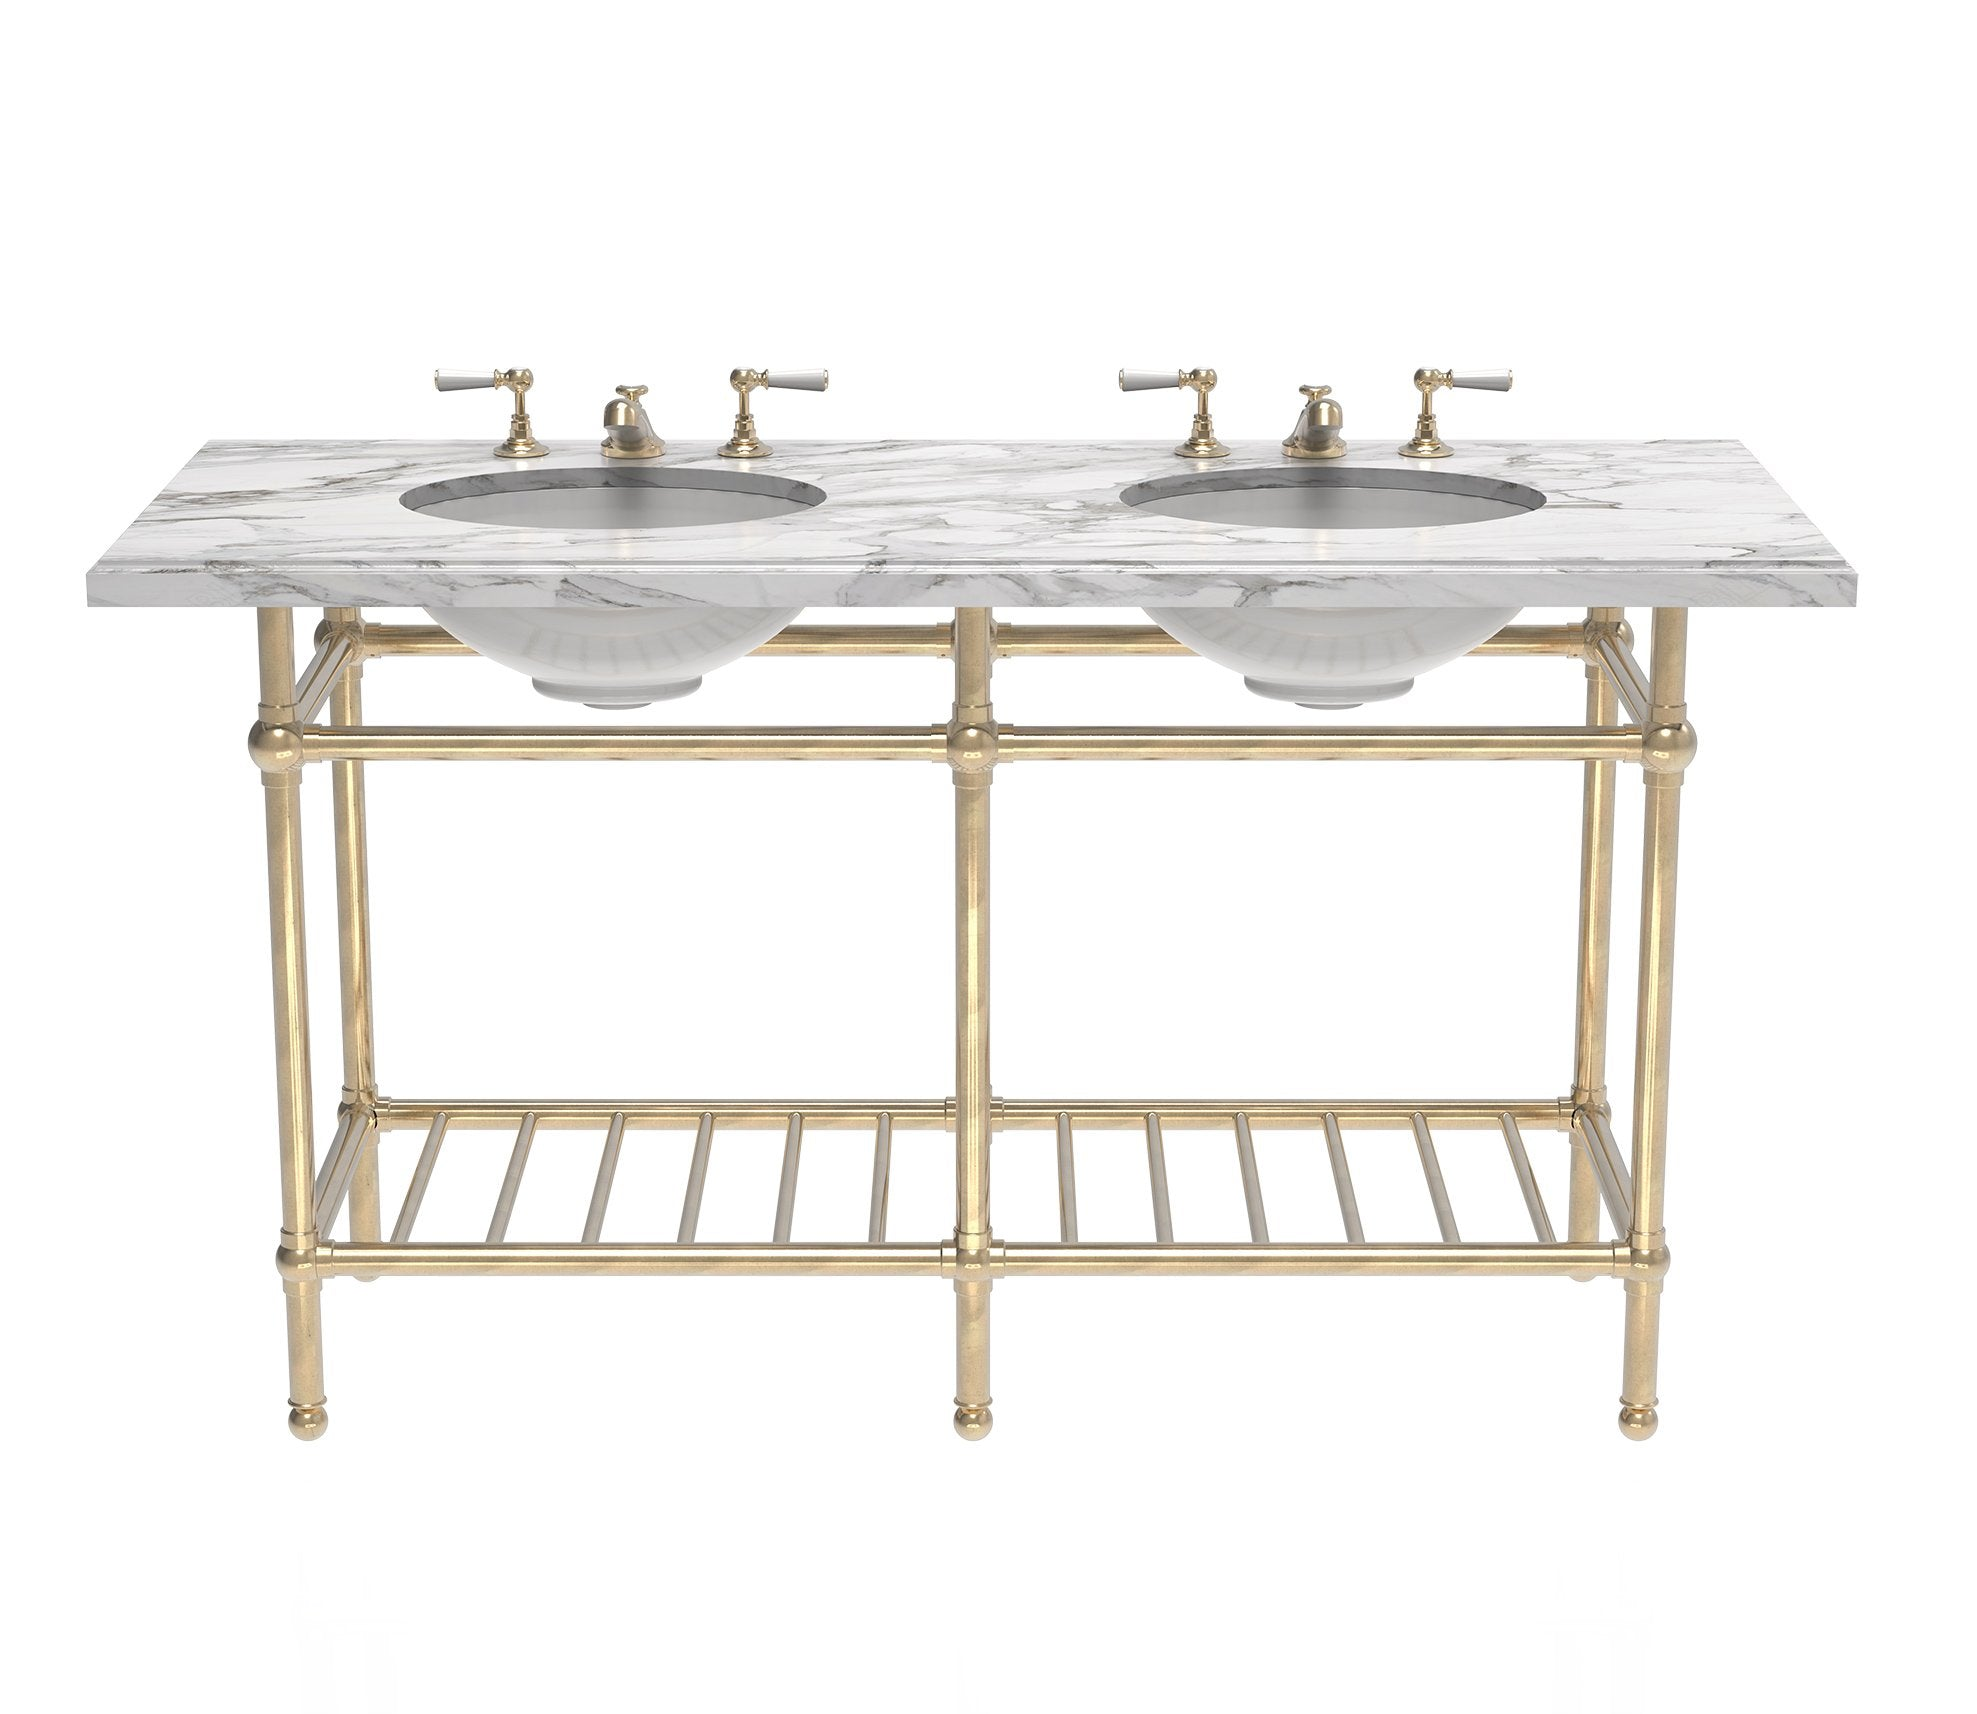 Gotham Washstand with Metal Shelf Double Product Image 3